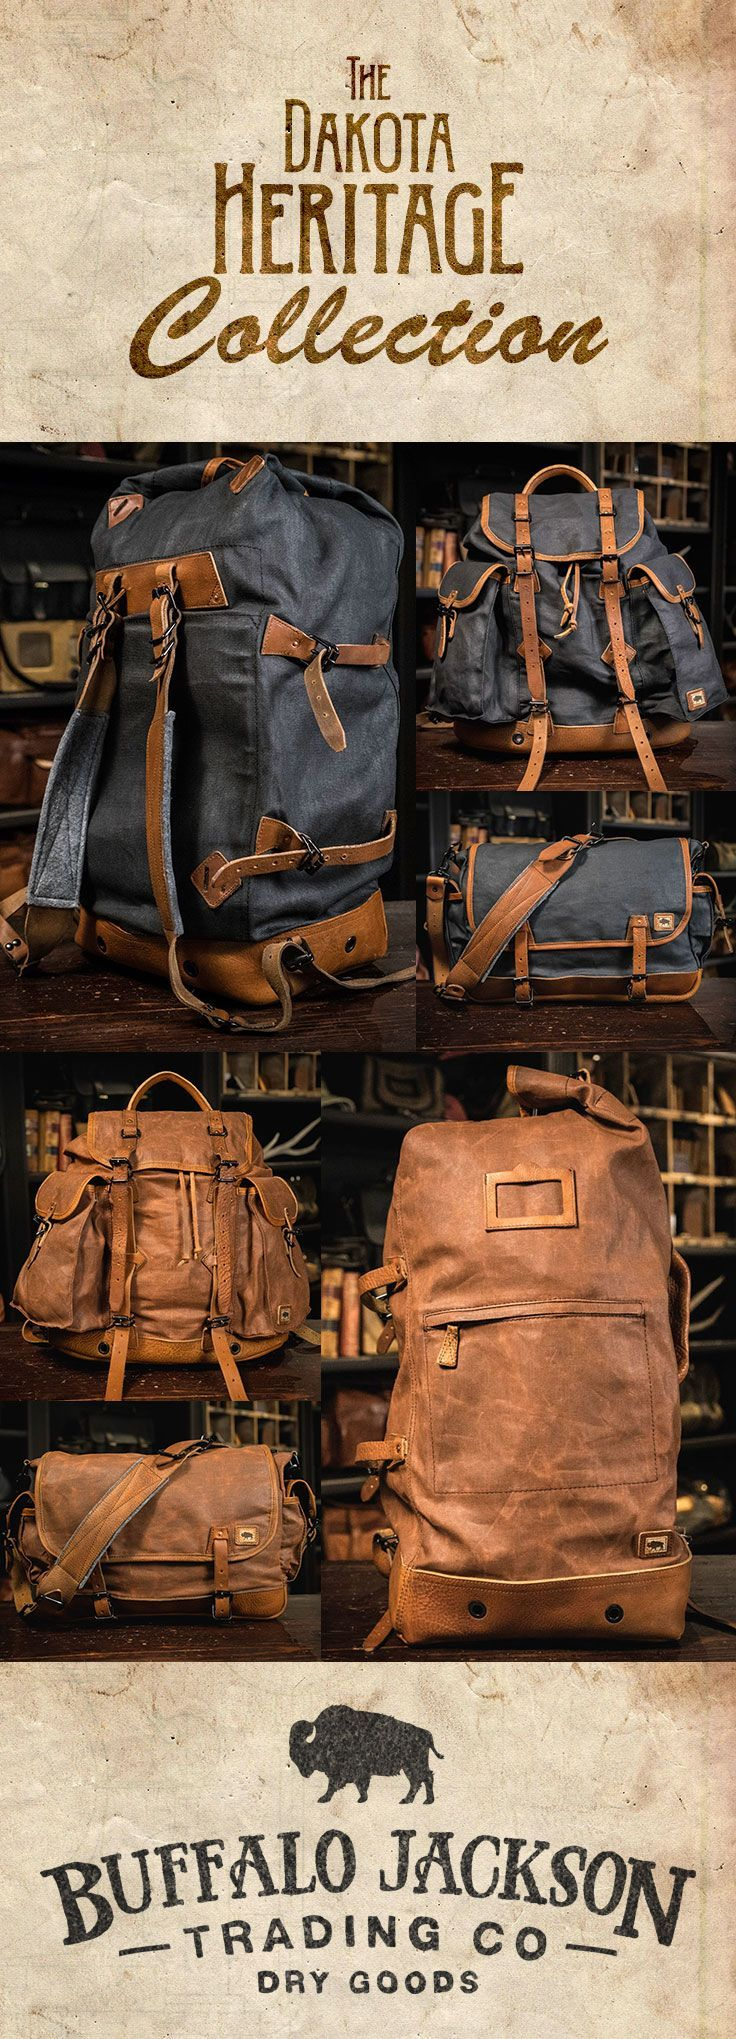 Crafted of waxed canvas and full grain leather with a distressed vintage finish, these bags were built to honor the memory of good men and good days. For work, sport, or travel. Great gifts for him any time of year. vintage military duffle backpack | rucksack | messenger bag | travel duffle | commuter backpack